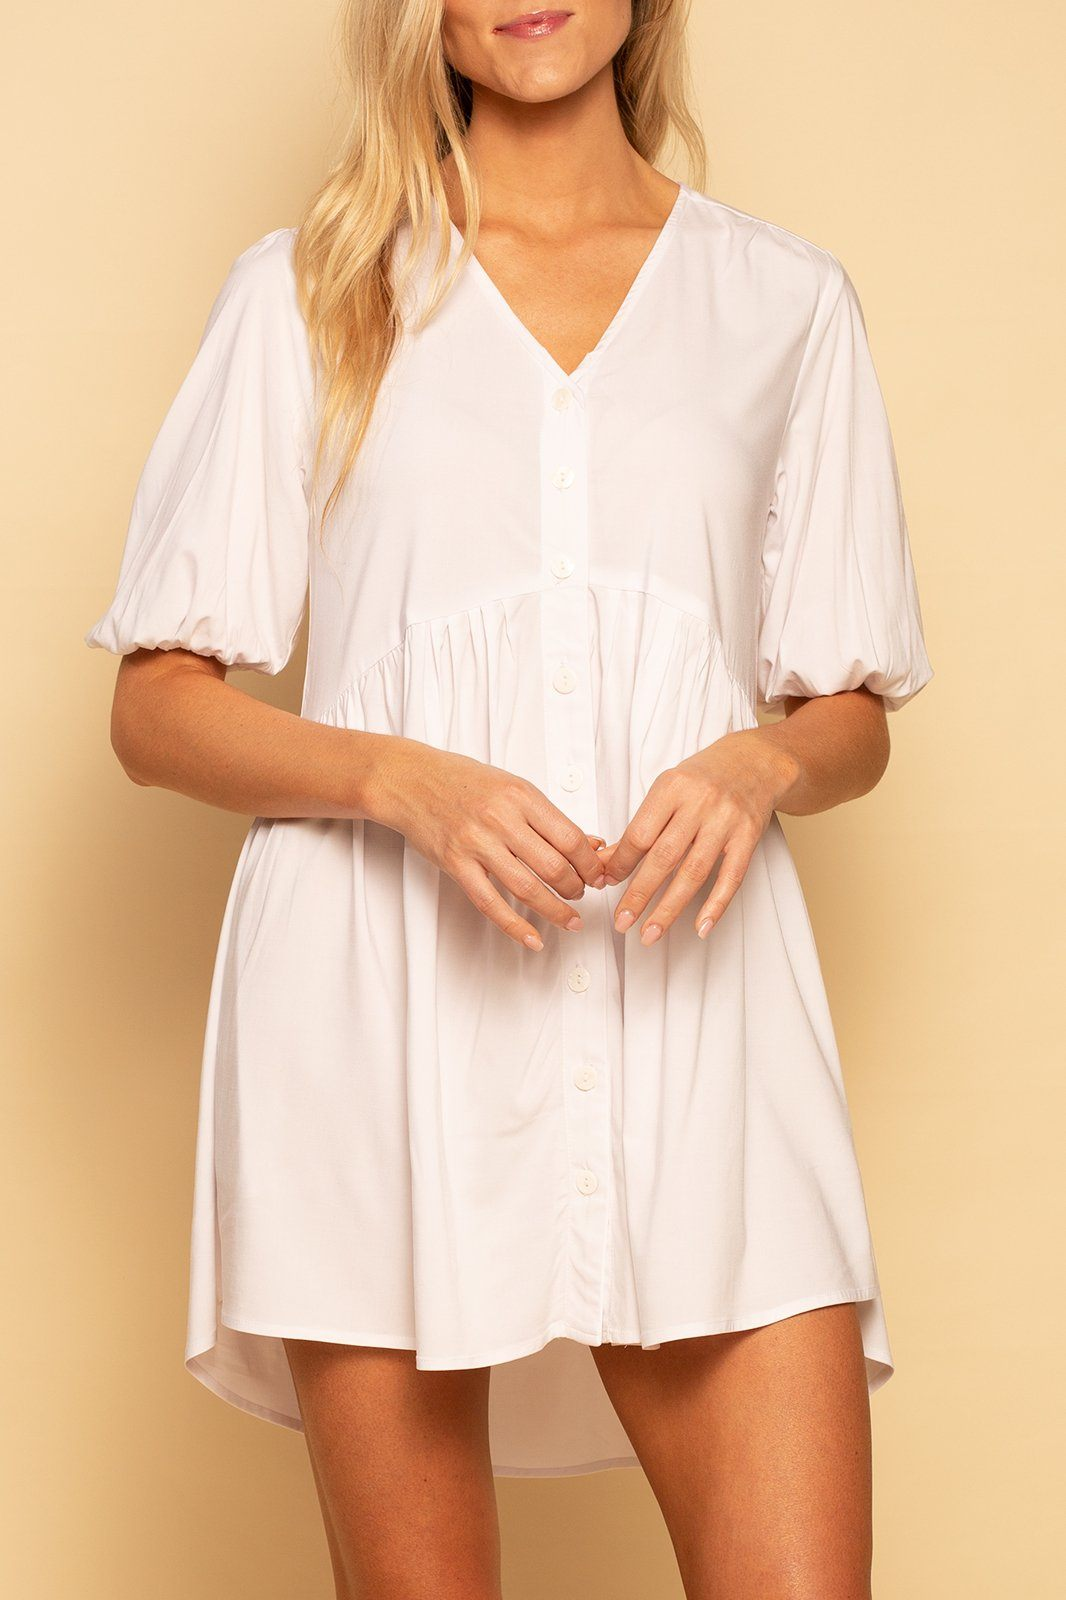 Charleston Babydoll Dress - White - Shore